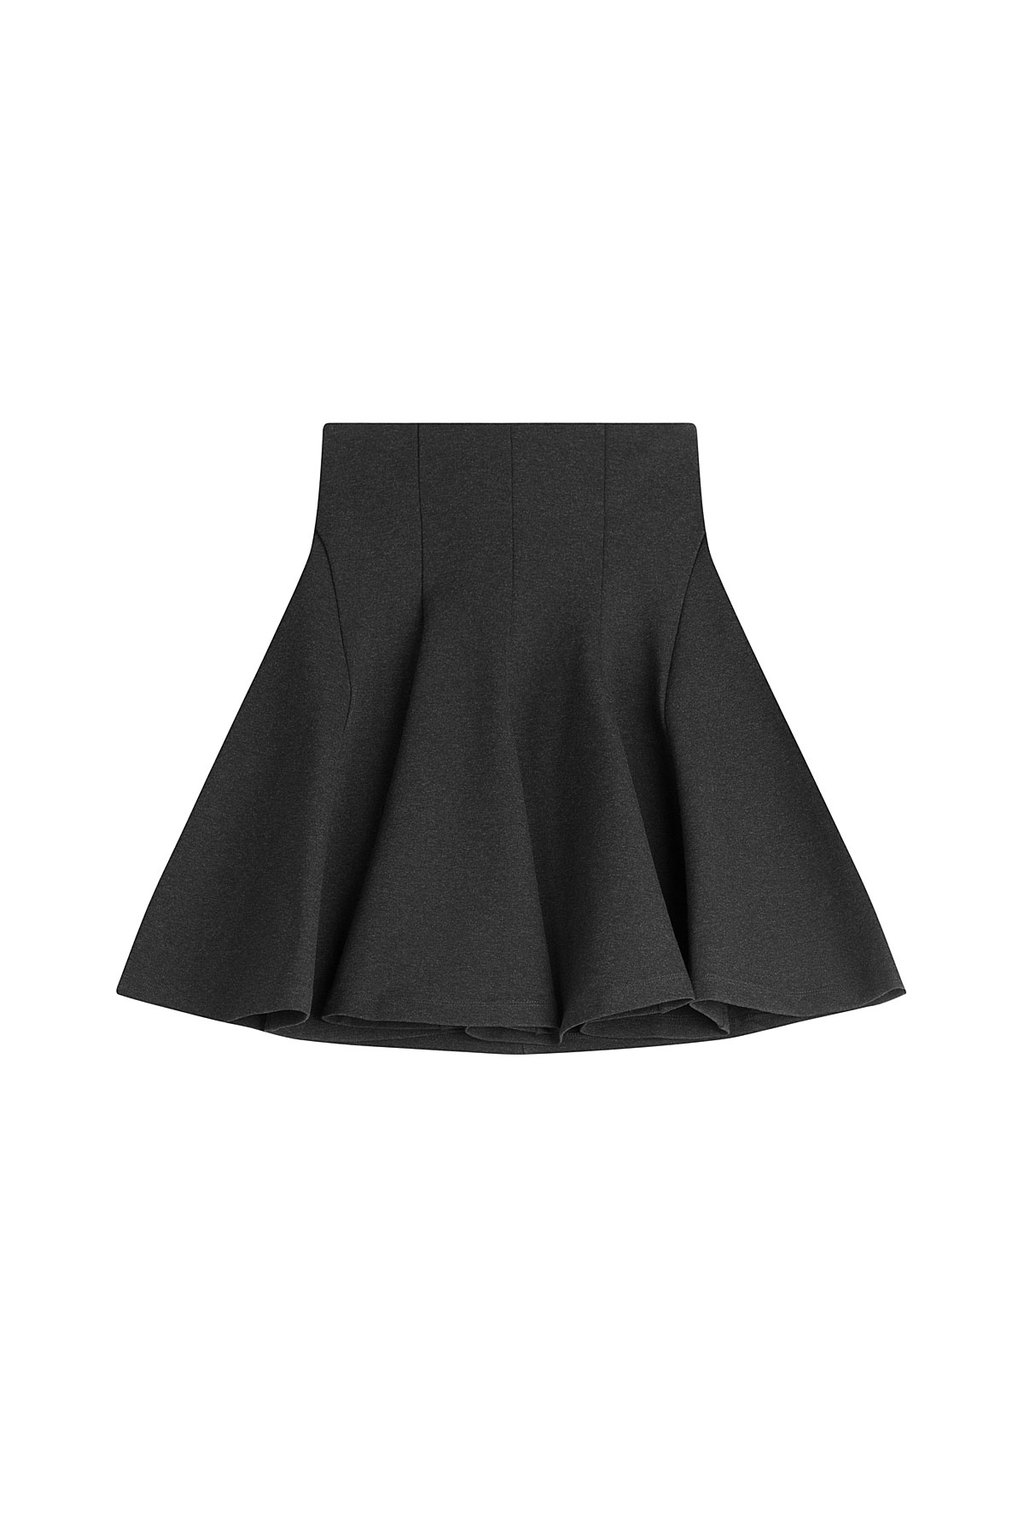 Flared Skirt Grey - length: mini; pattern: plain; fit: loose/voluminous; waist: mid/regular rise; predominant colour: black; occasions: casual; style: a-line; hip detail: adds bulk at the hips; pattern type: fabric; texture group: woven light midweight; season: a/w 2015; wardrobe: basic